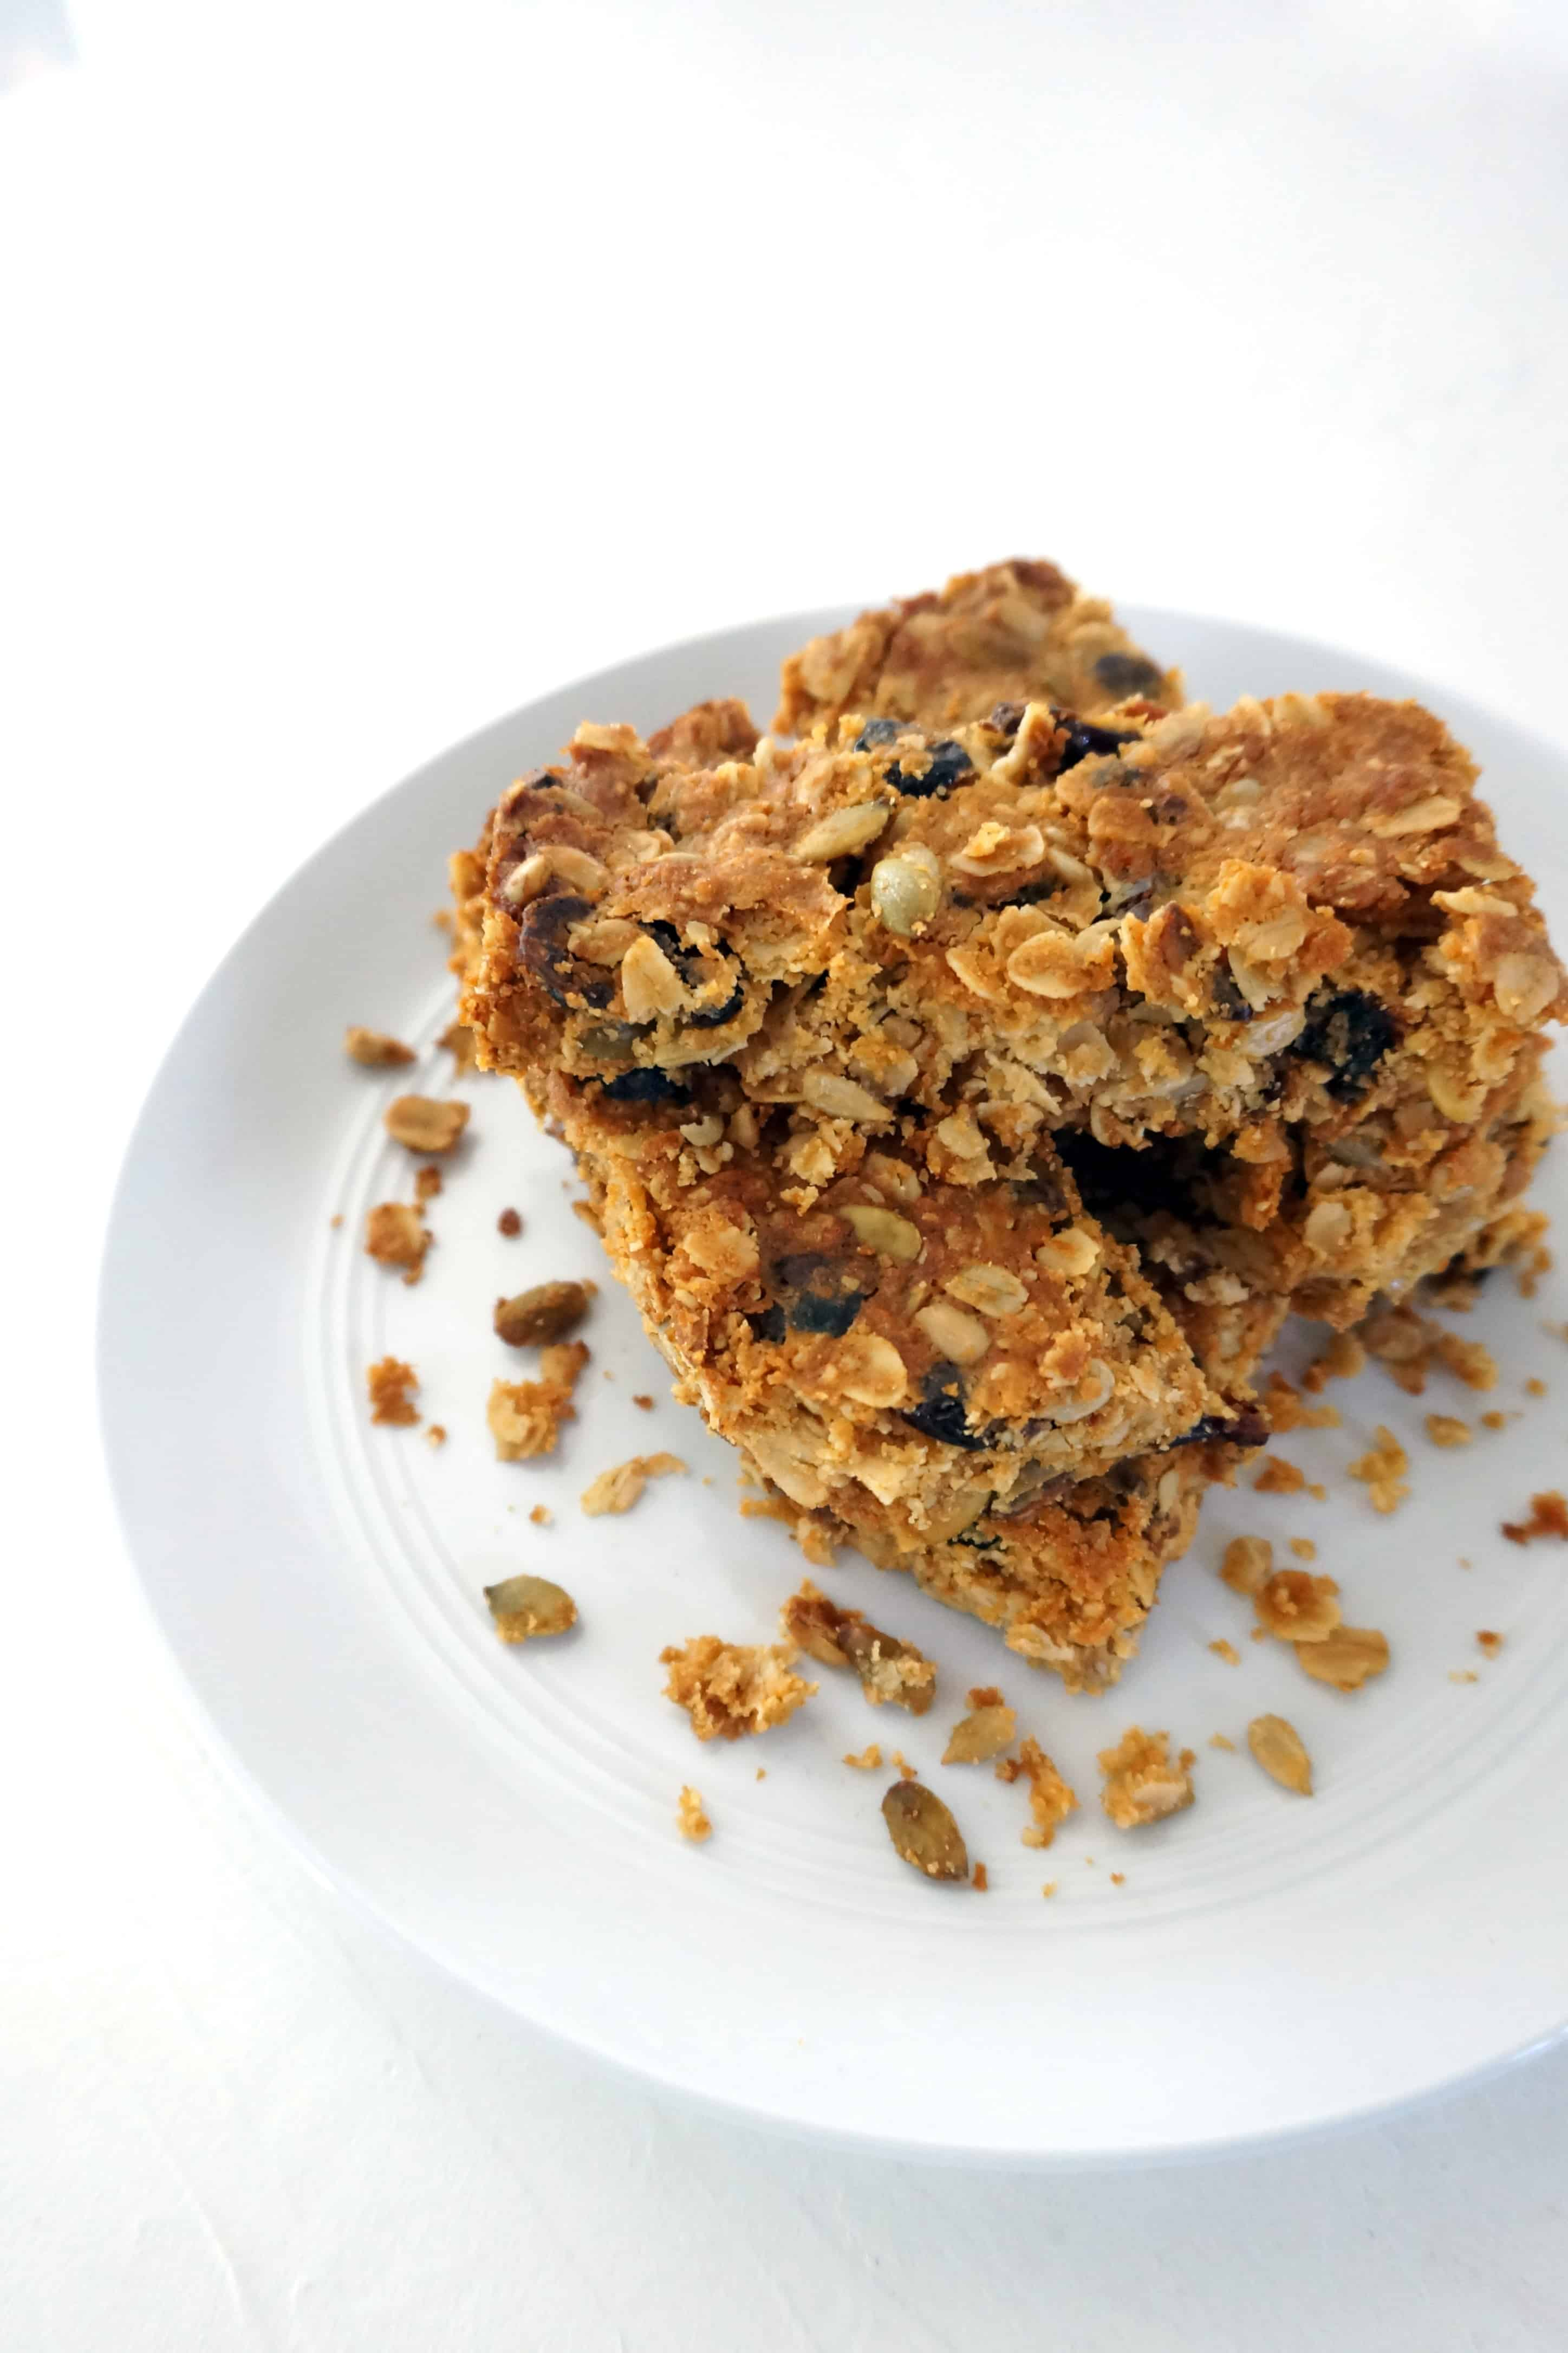 stacked muesli slice bars on a white plate